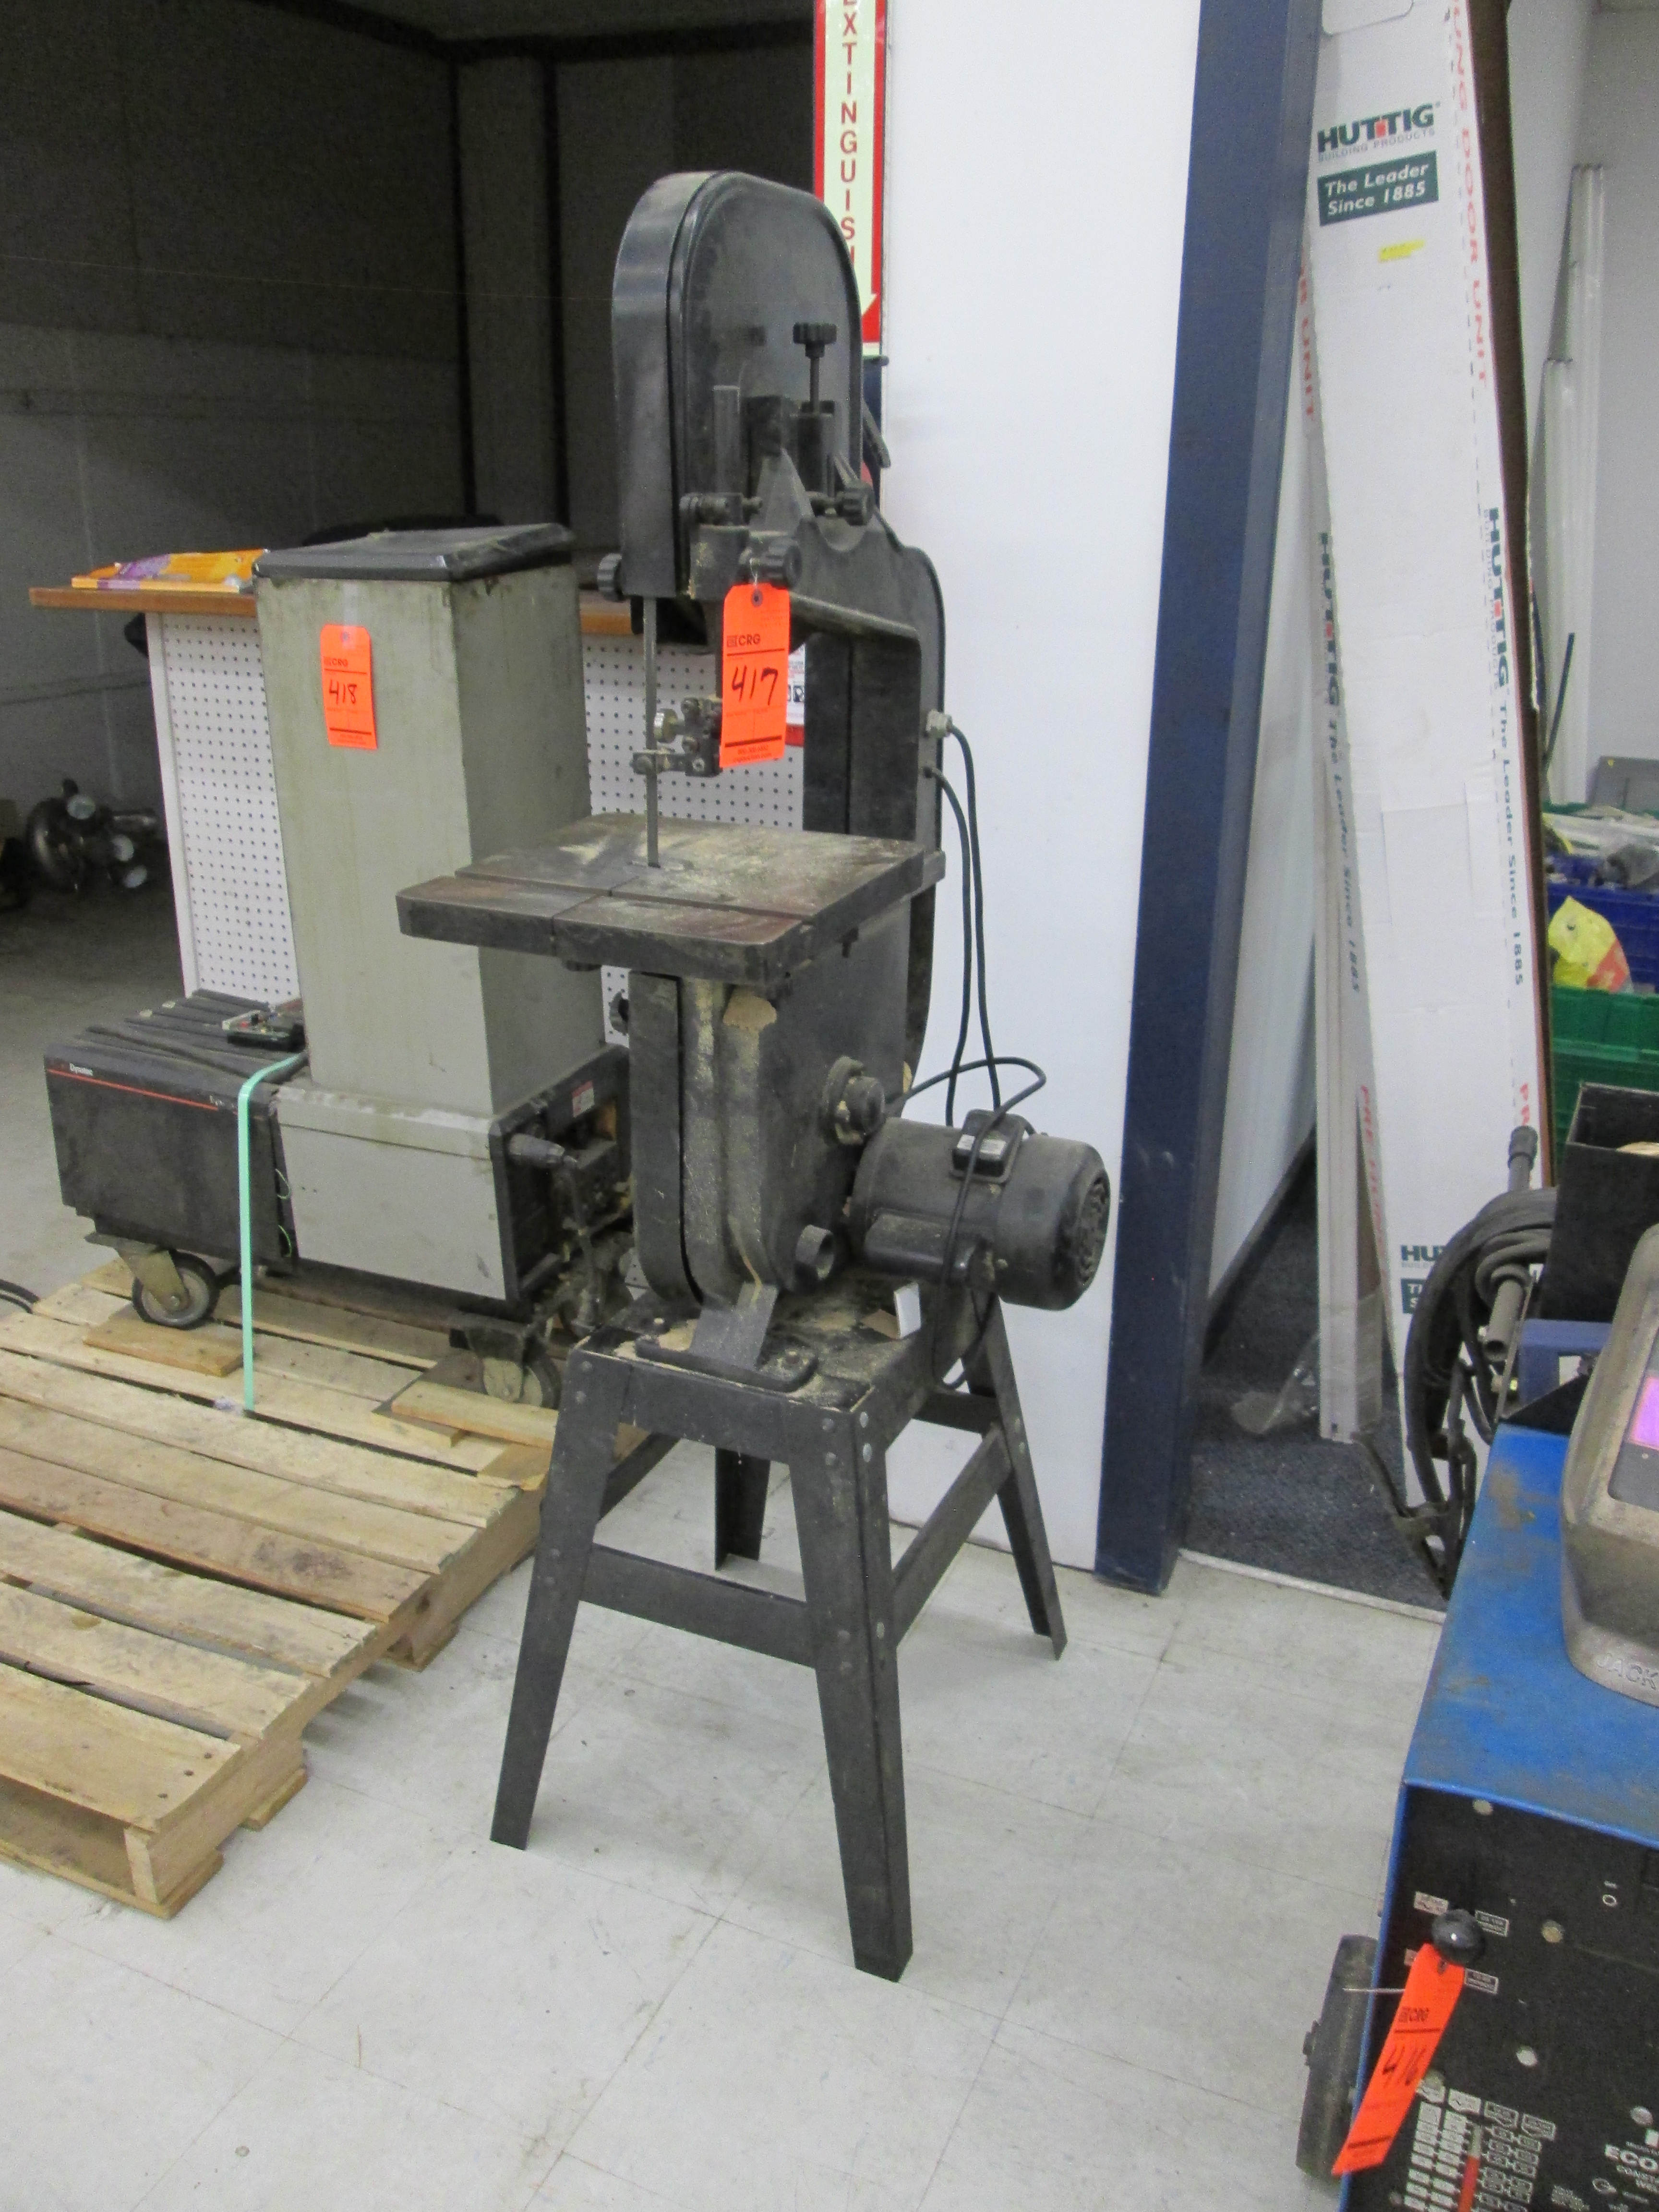 Lot 417 - Craftsman 4TJ91, 14 in. vertical band saw - LOCATED AT 524 ROUTE 7 SO., MILTON, VT